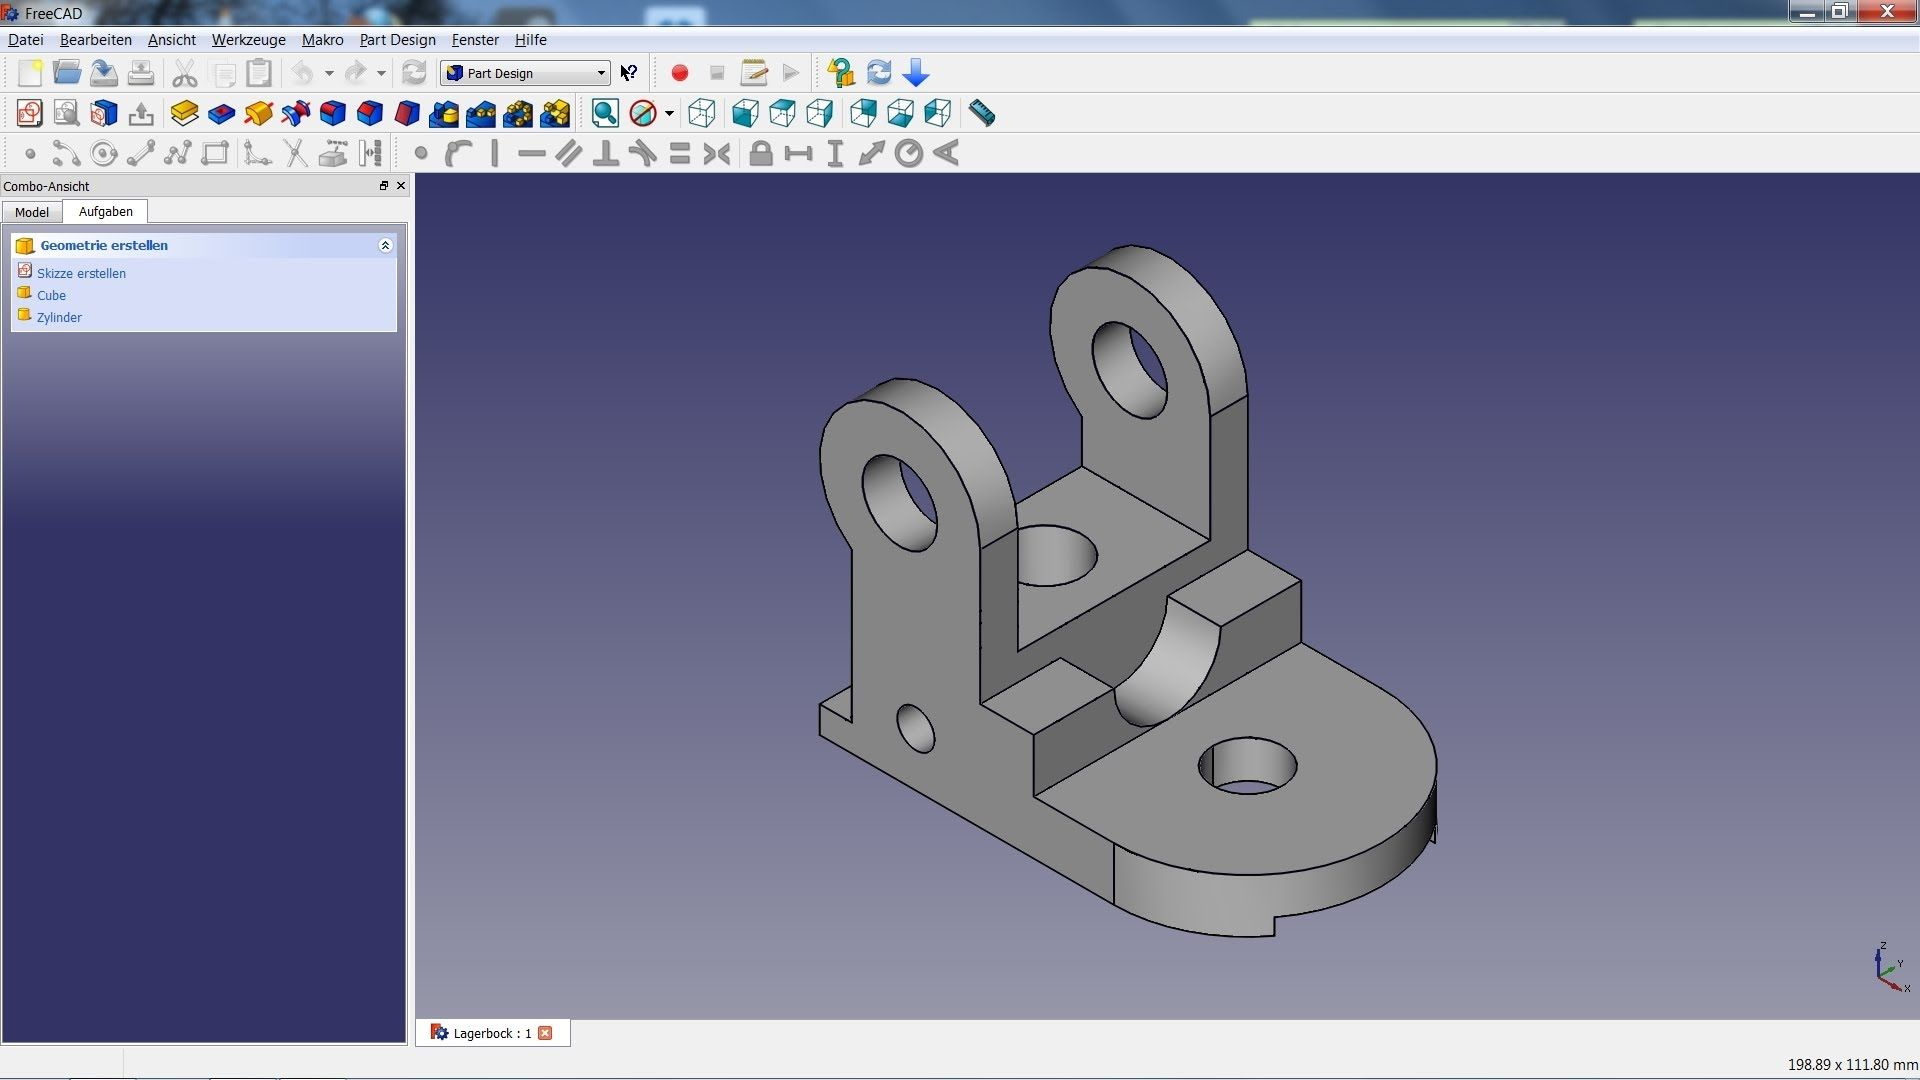 FreeCAD Tutorial & Review From a 2D Sketch to a 3D Print